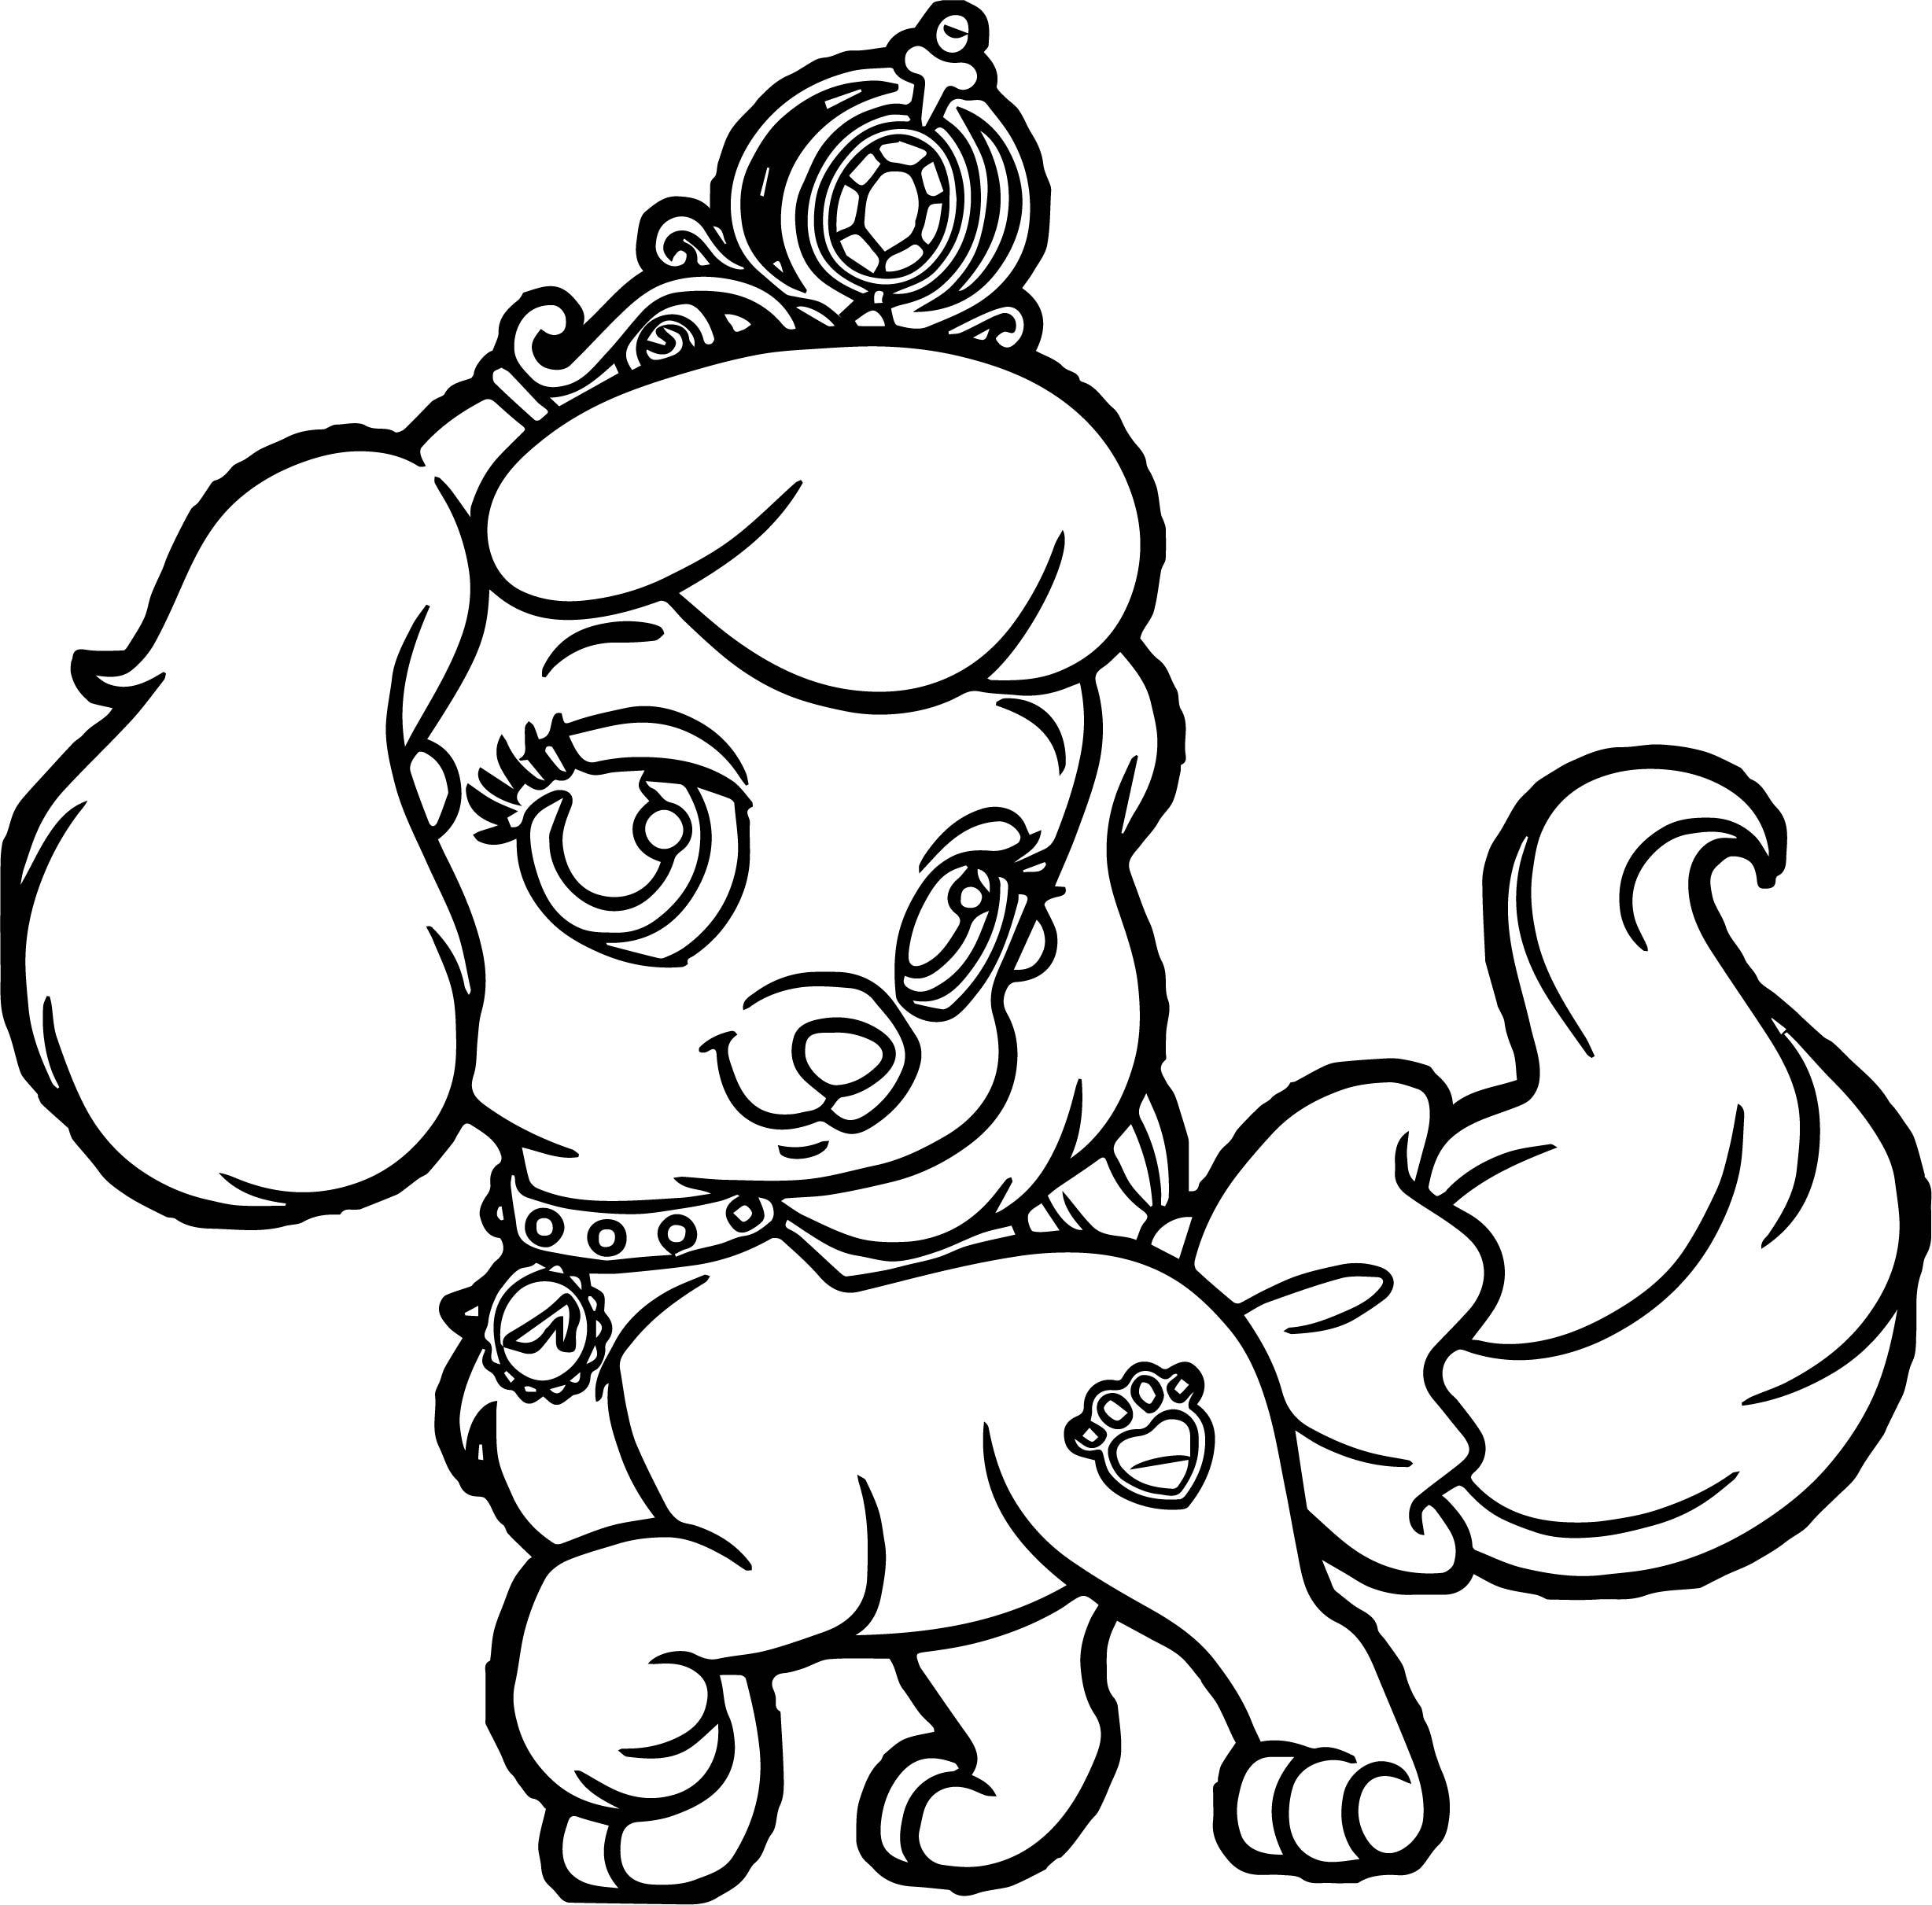 dog coloring pages for toddlers puppy dog pals coloring pages to download and print for free pages dog toddlers coloring for